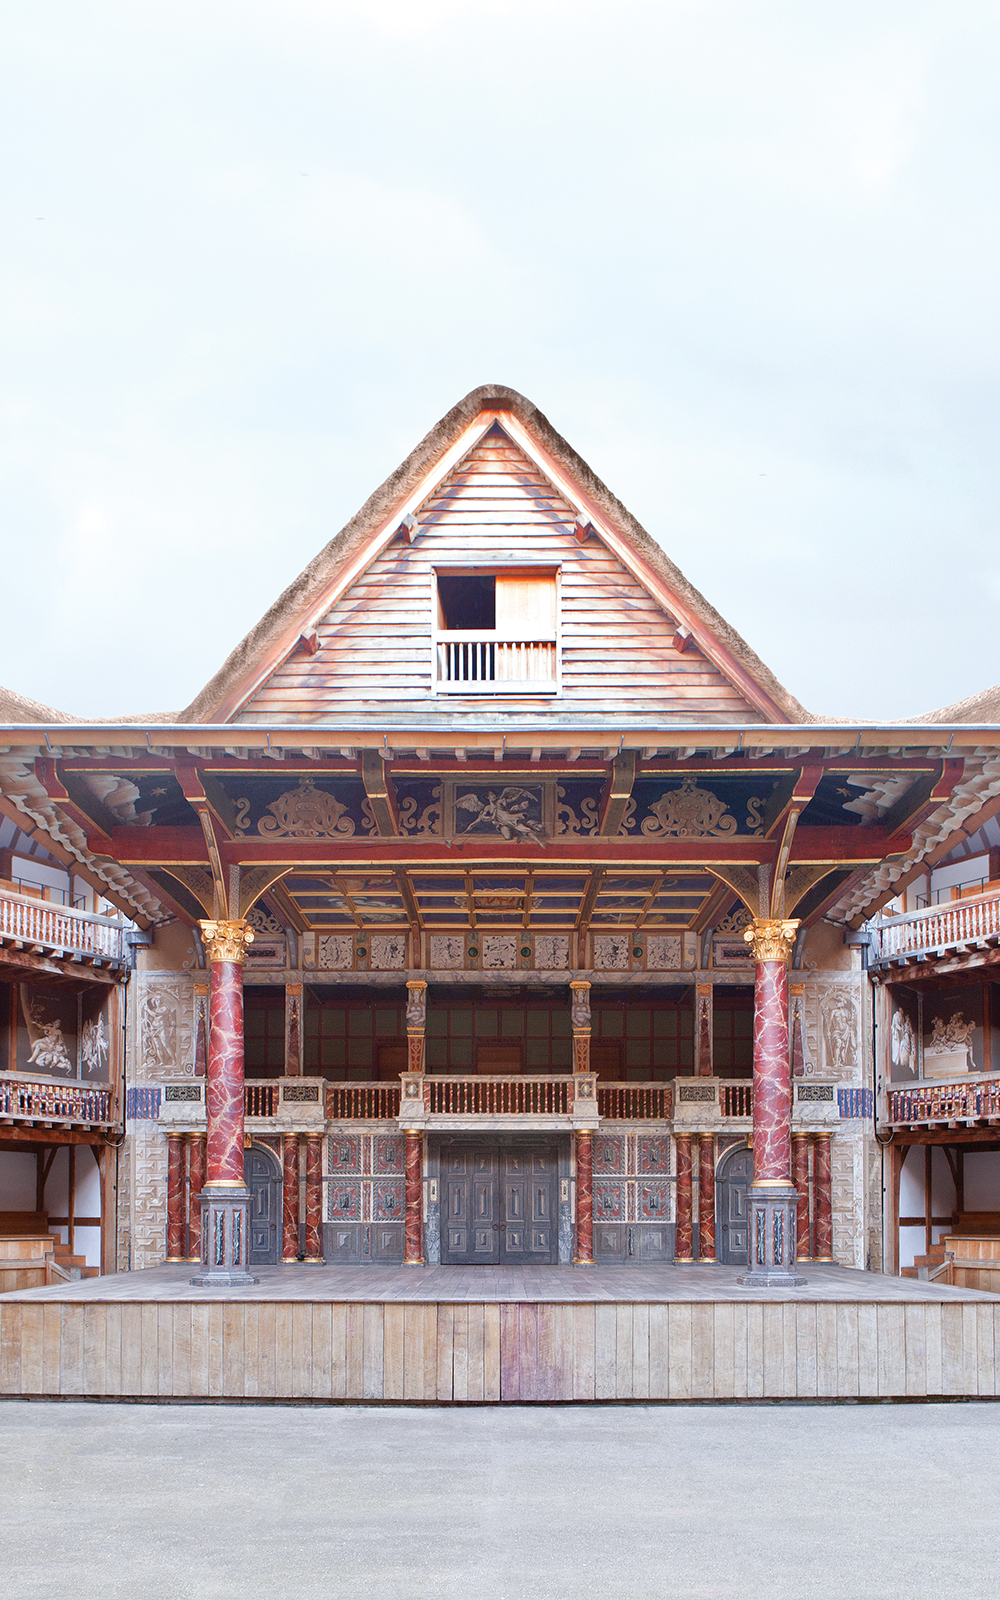 The front of the Globe Theatre with its pointed roof over the stage